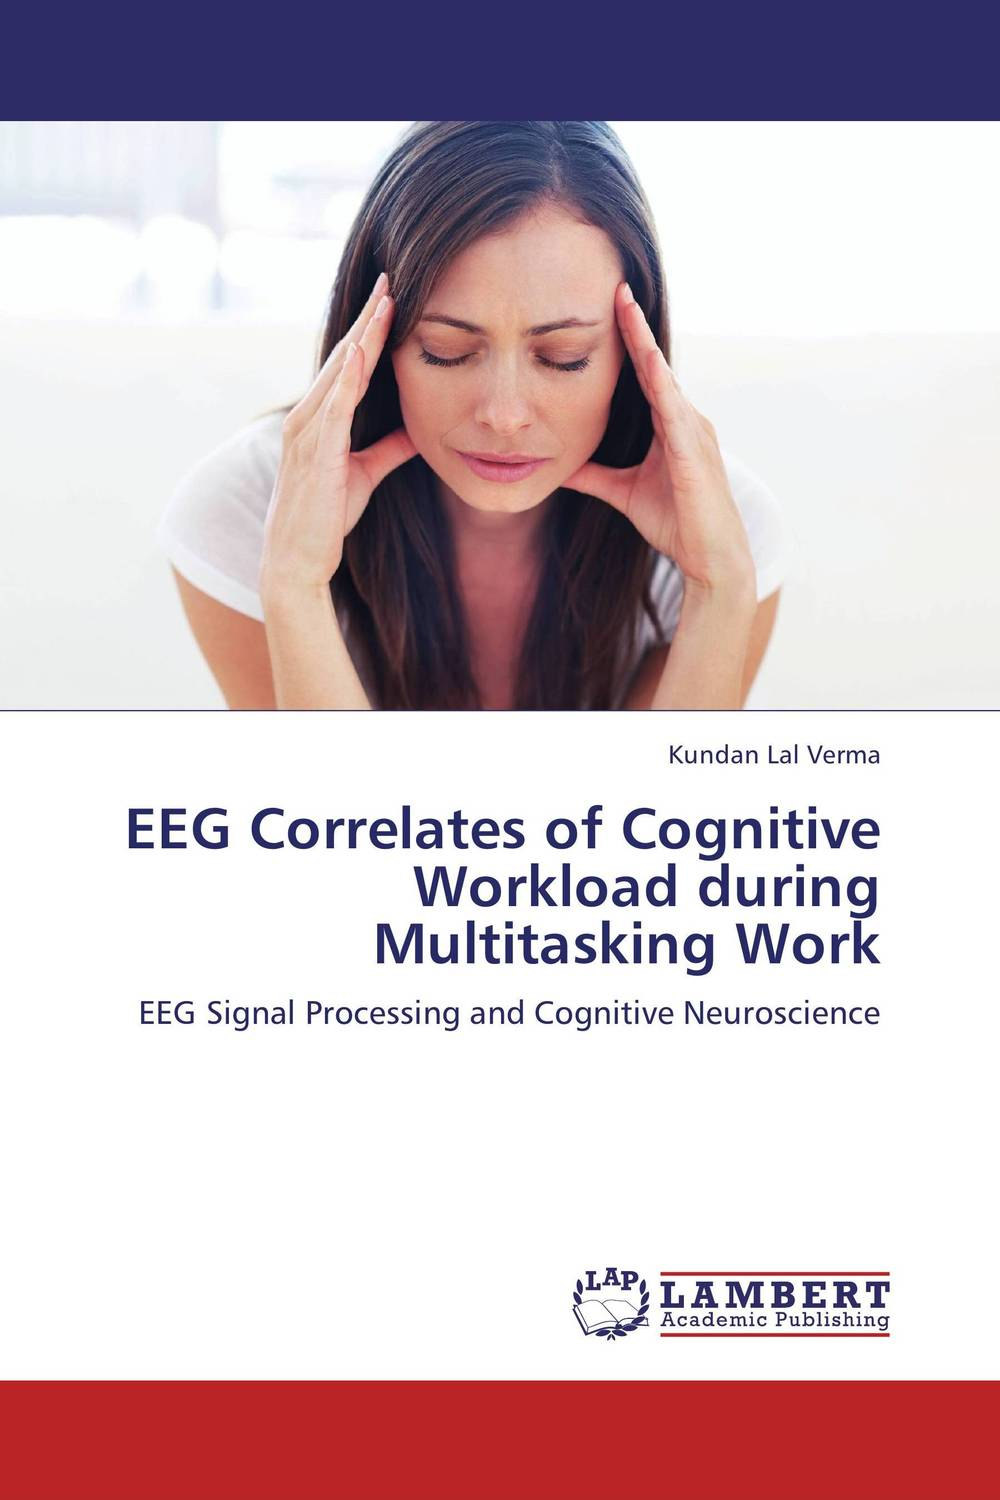 EEG Correlates of Cognitive Workload during Multitasking Work schmitt neuroscience resea symp summ an anth o f work session repo from resea prog bull